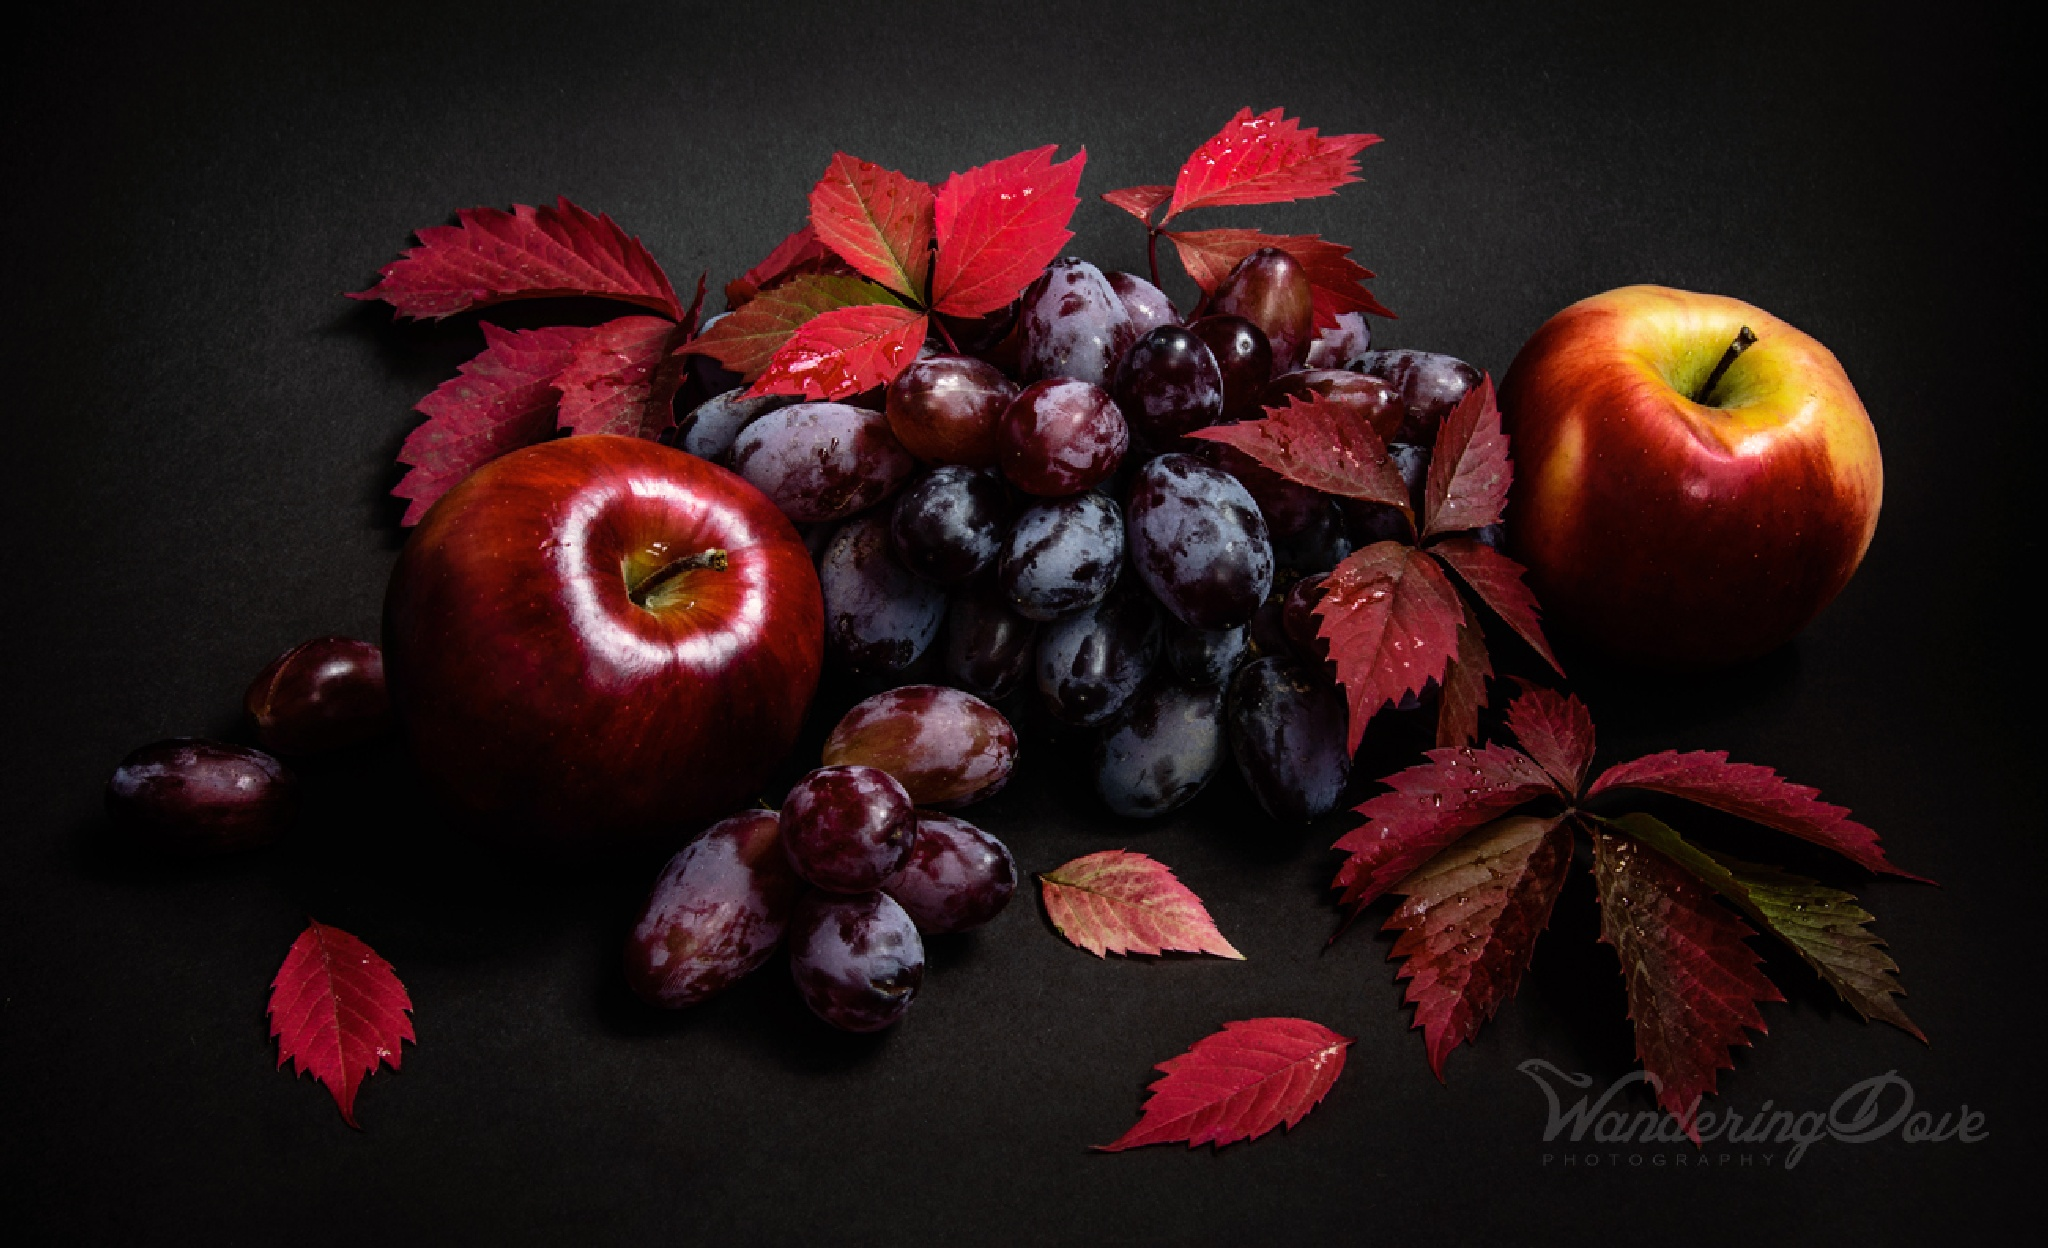 Autumn leaves with grapes and apples by Wandering Dove Photography